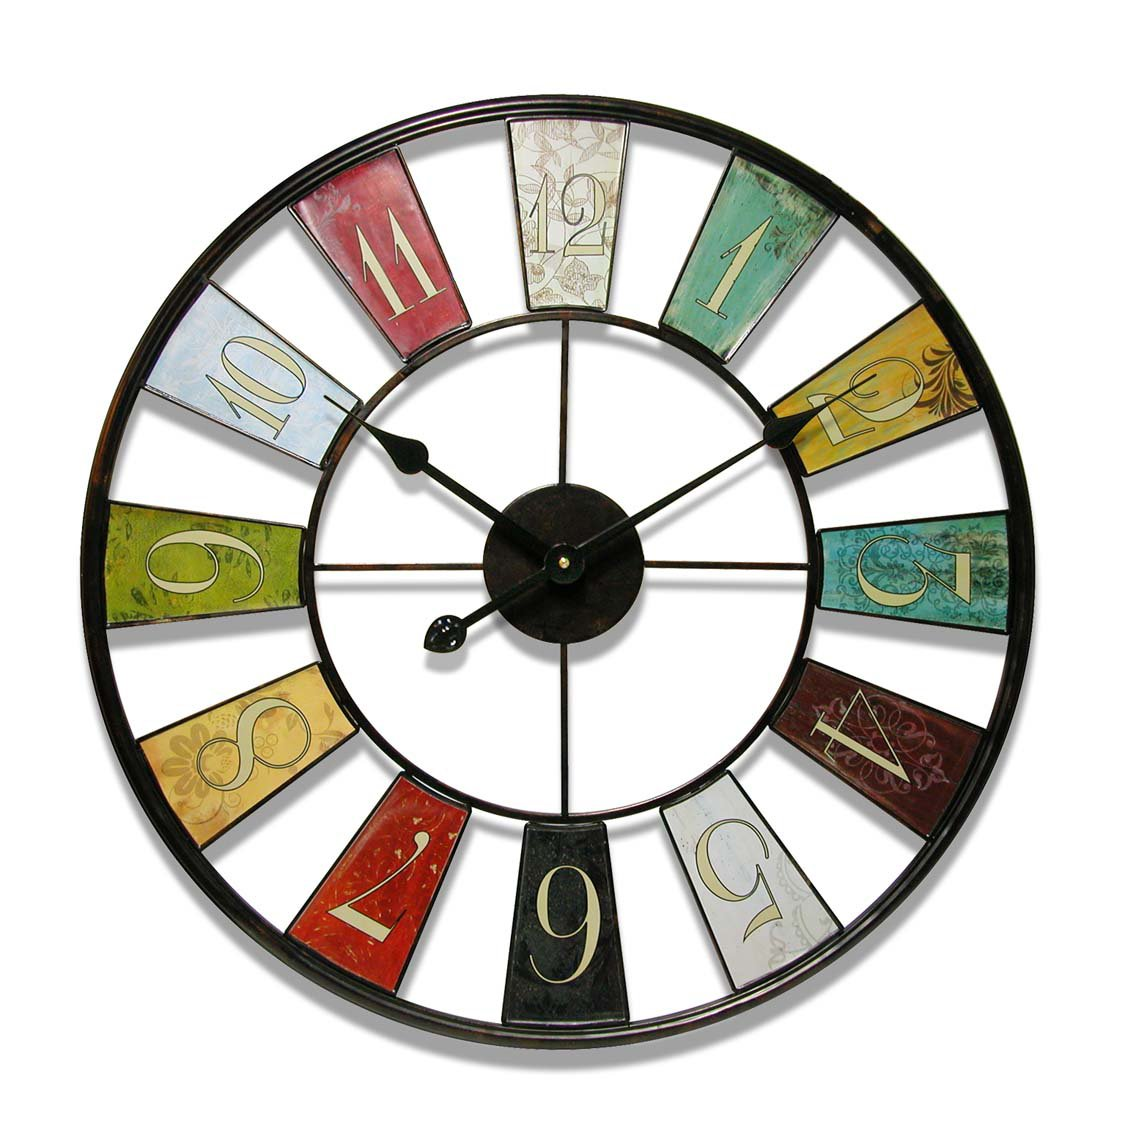 9 large decorative wall clocks to check time in style